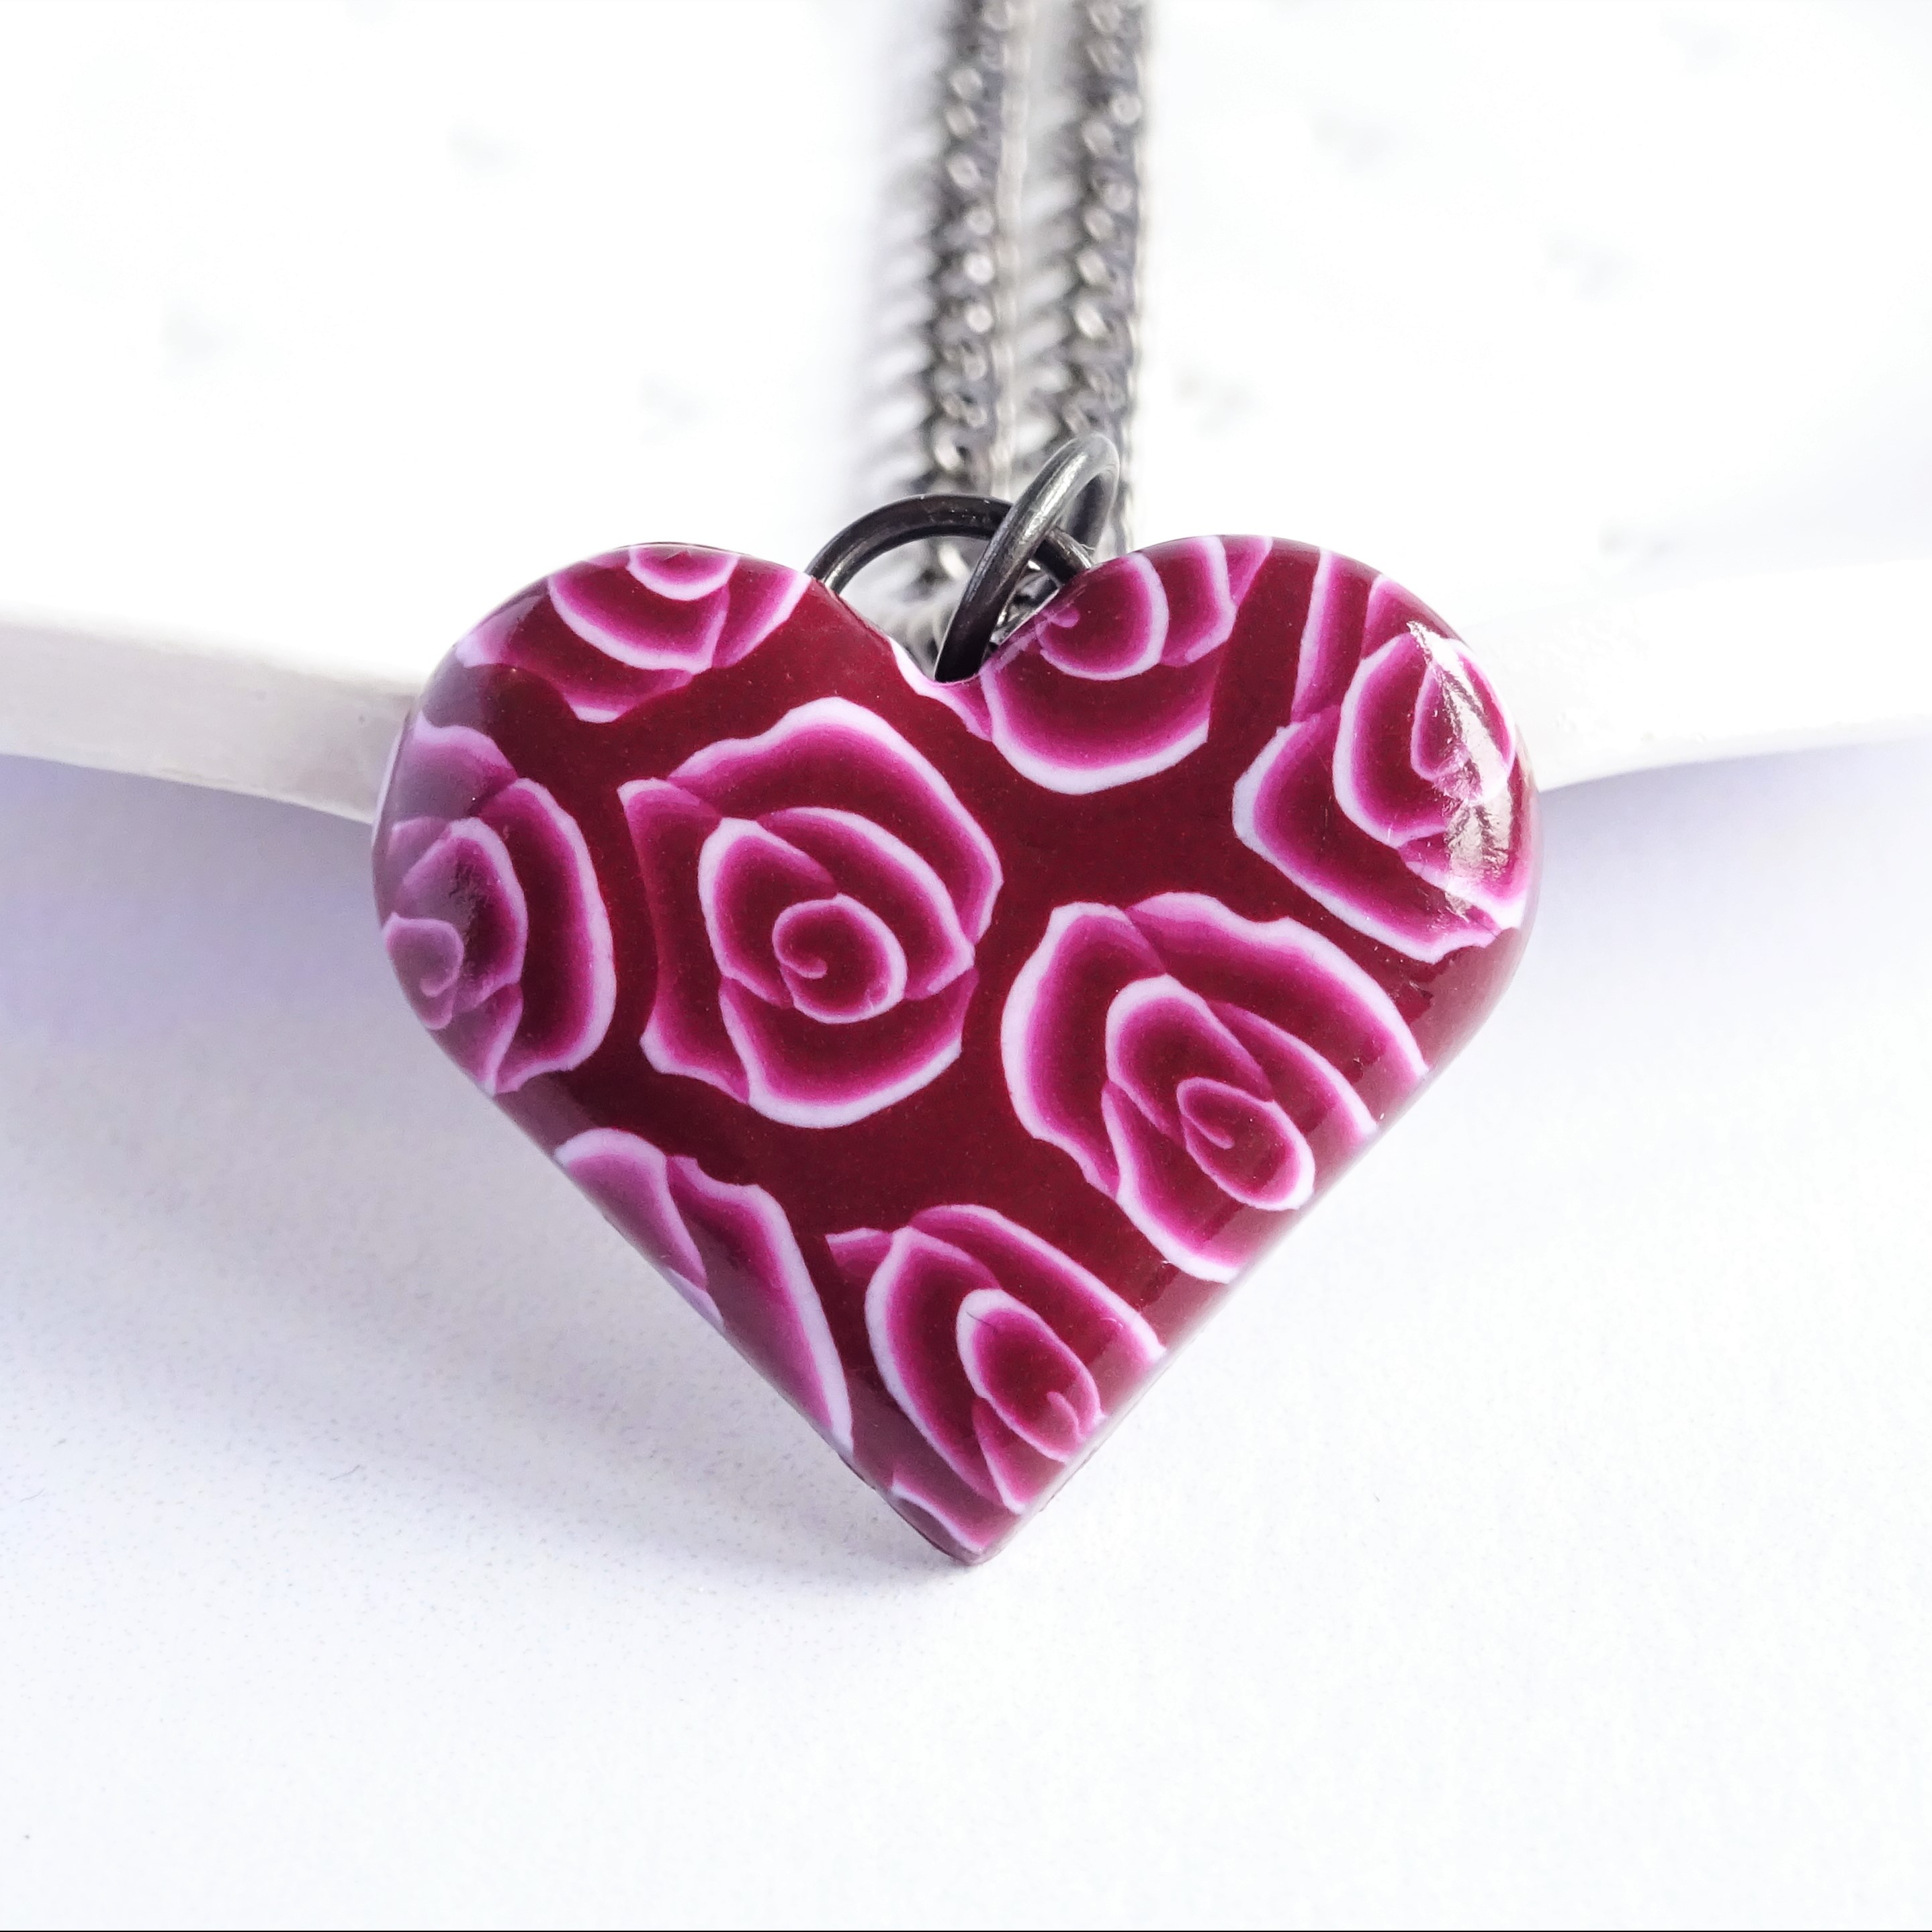 A red heart rose pendant on a long black chain